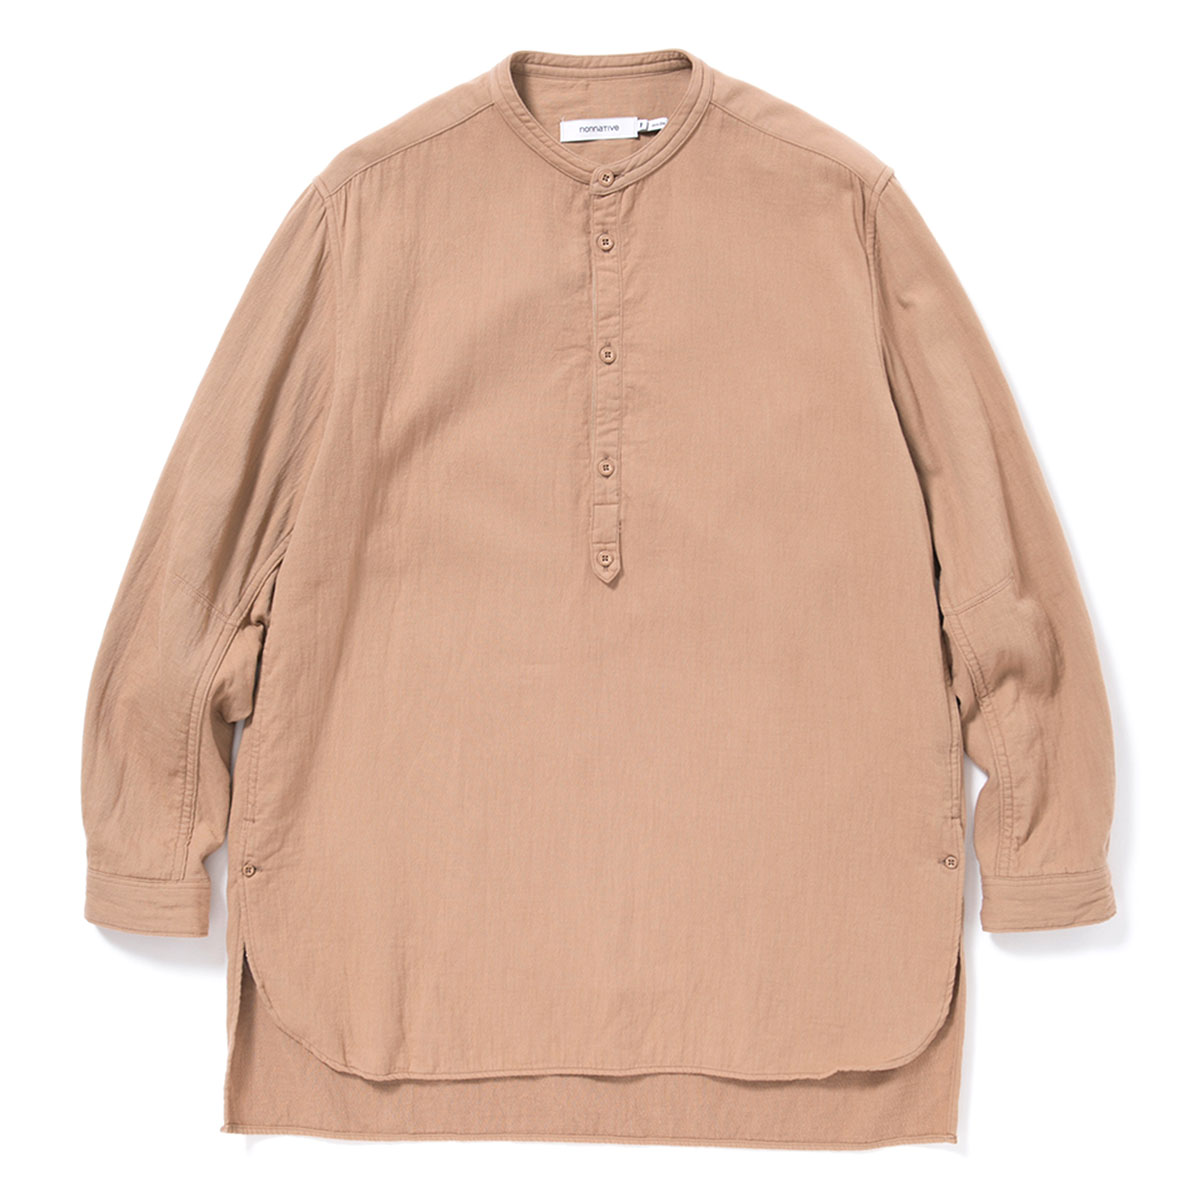 nonnative / OFFICER PULLOVER SHIRT COTTON DOUBLE TWILL -BEIGE